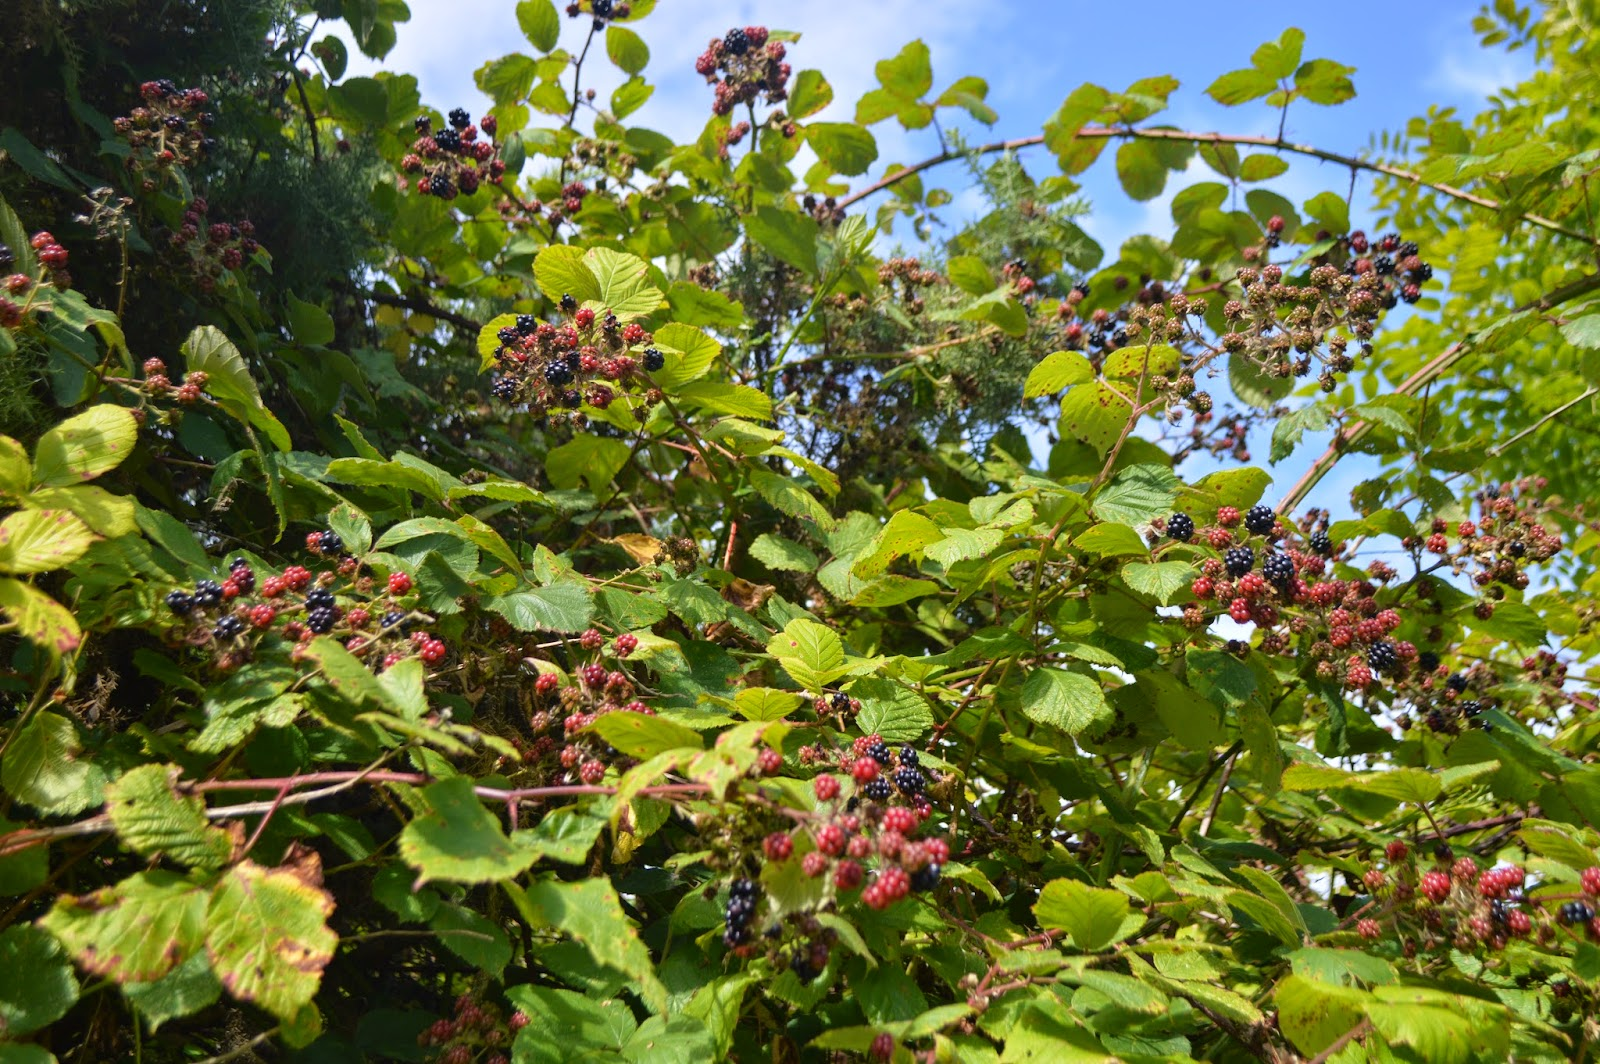 , Blackberry Picking, Crumble and Pie